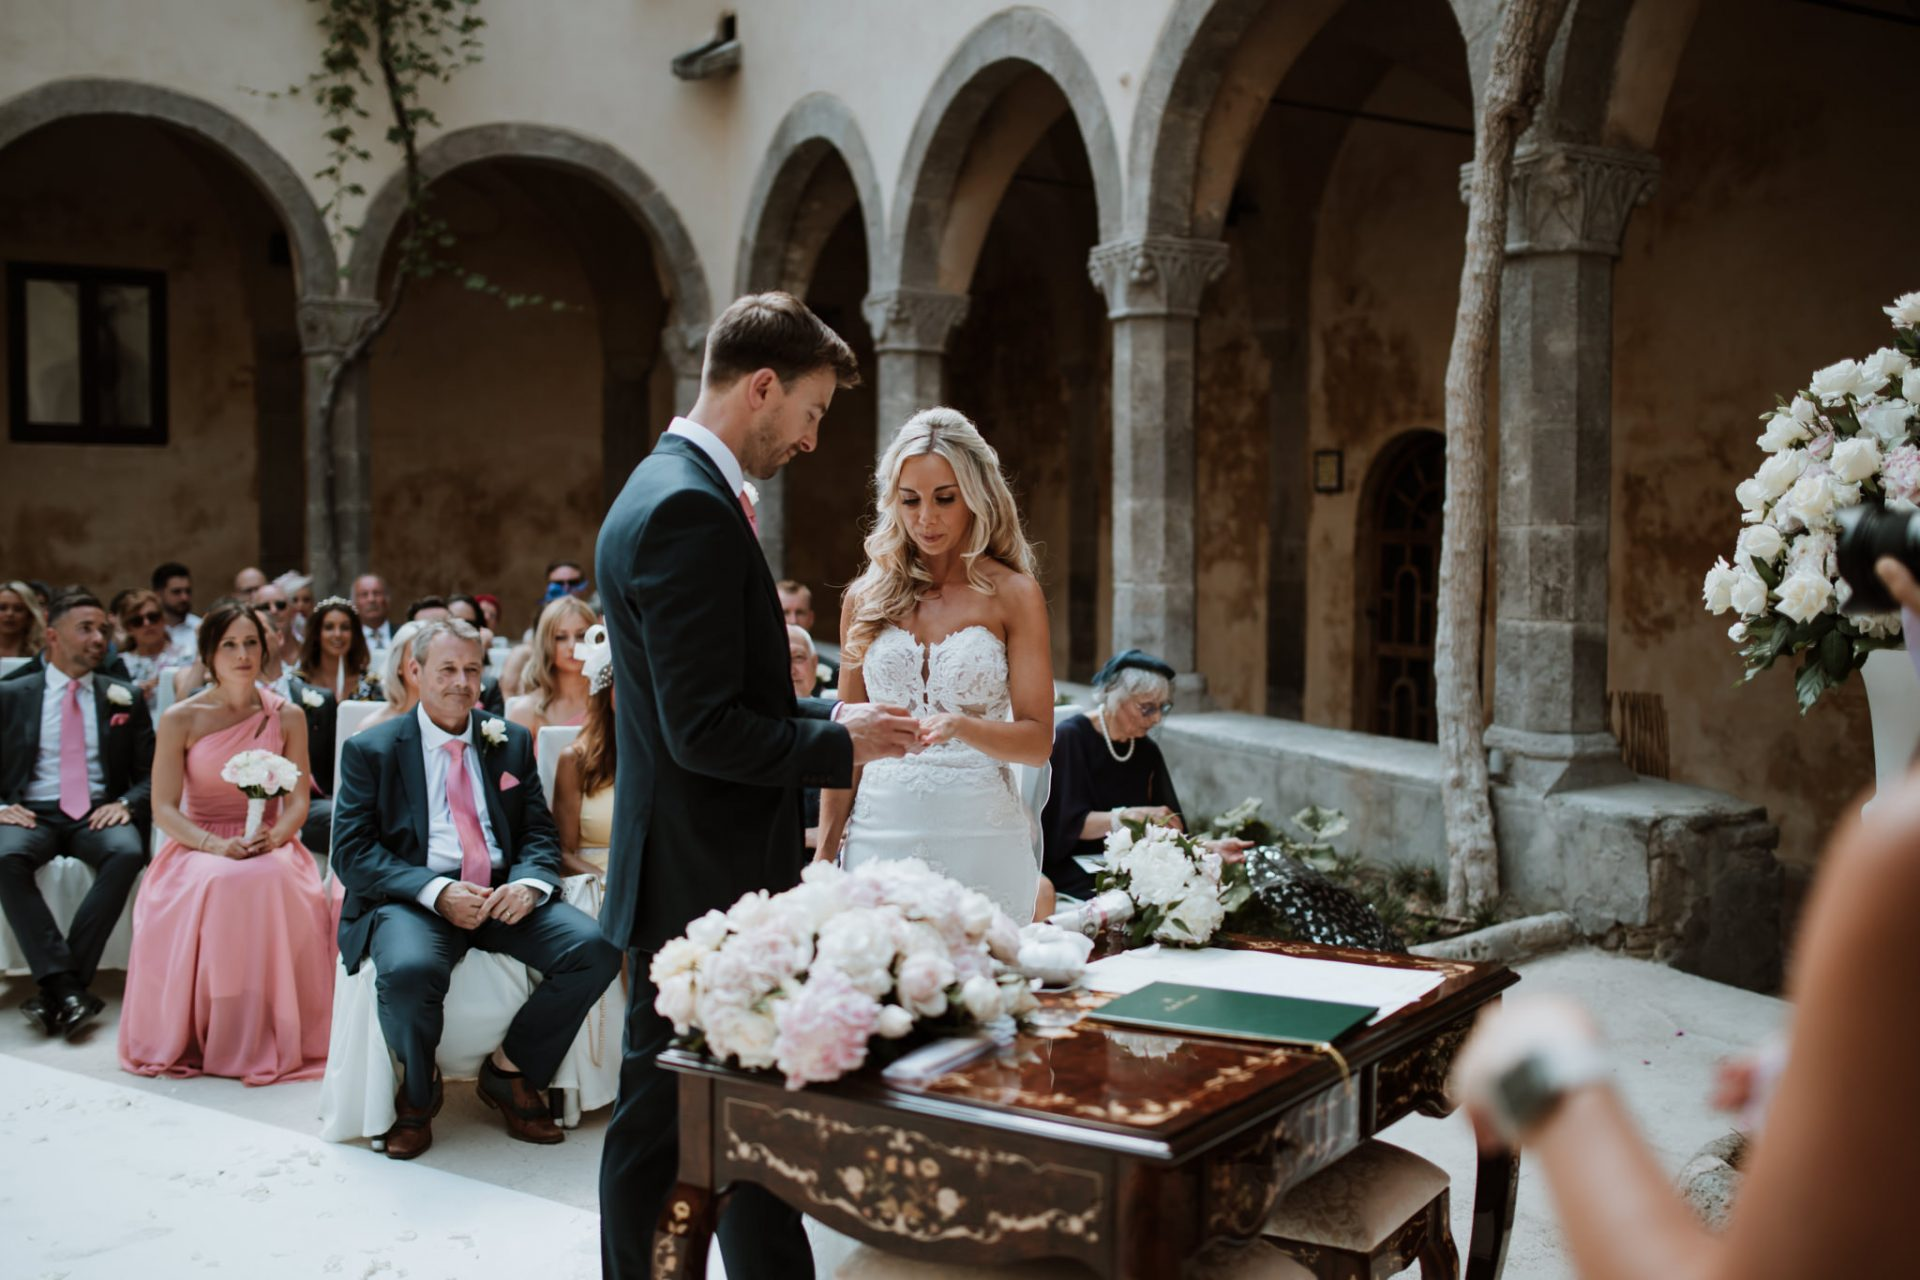 exchanging rings wedding ceremony sorrento cloisters chiostro di san francesco